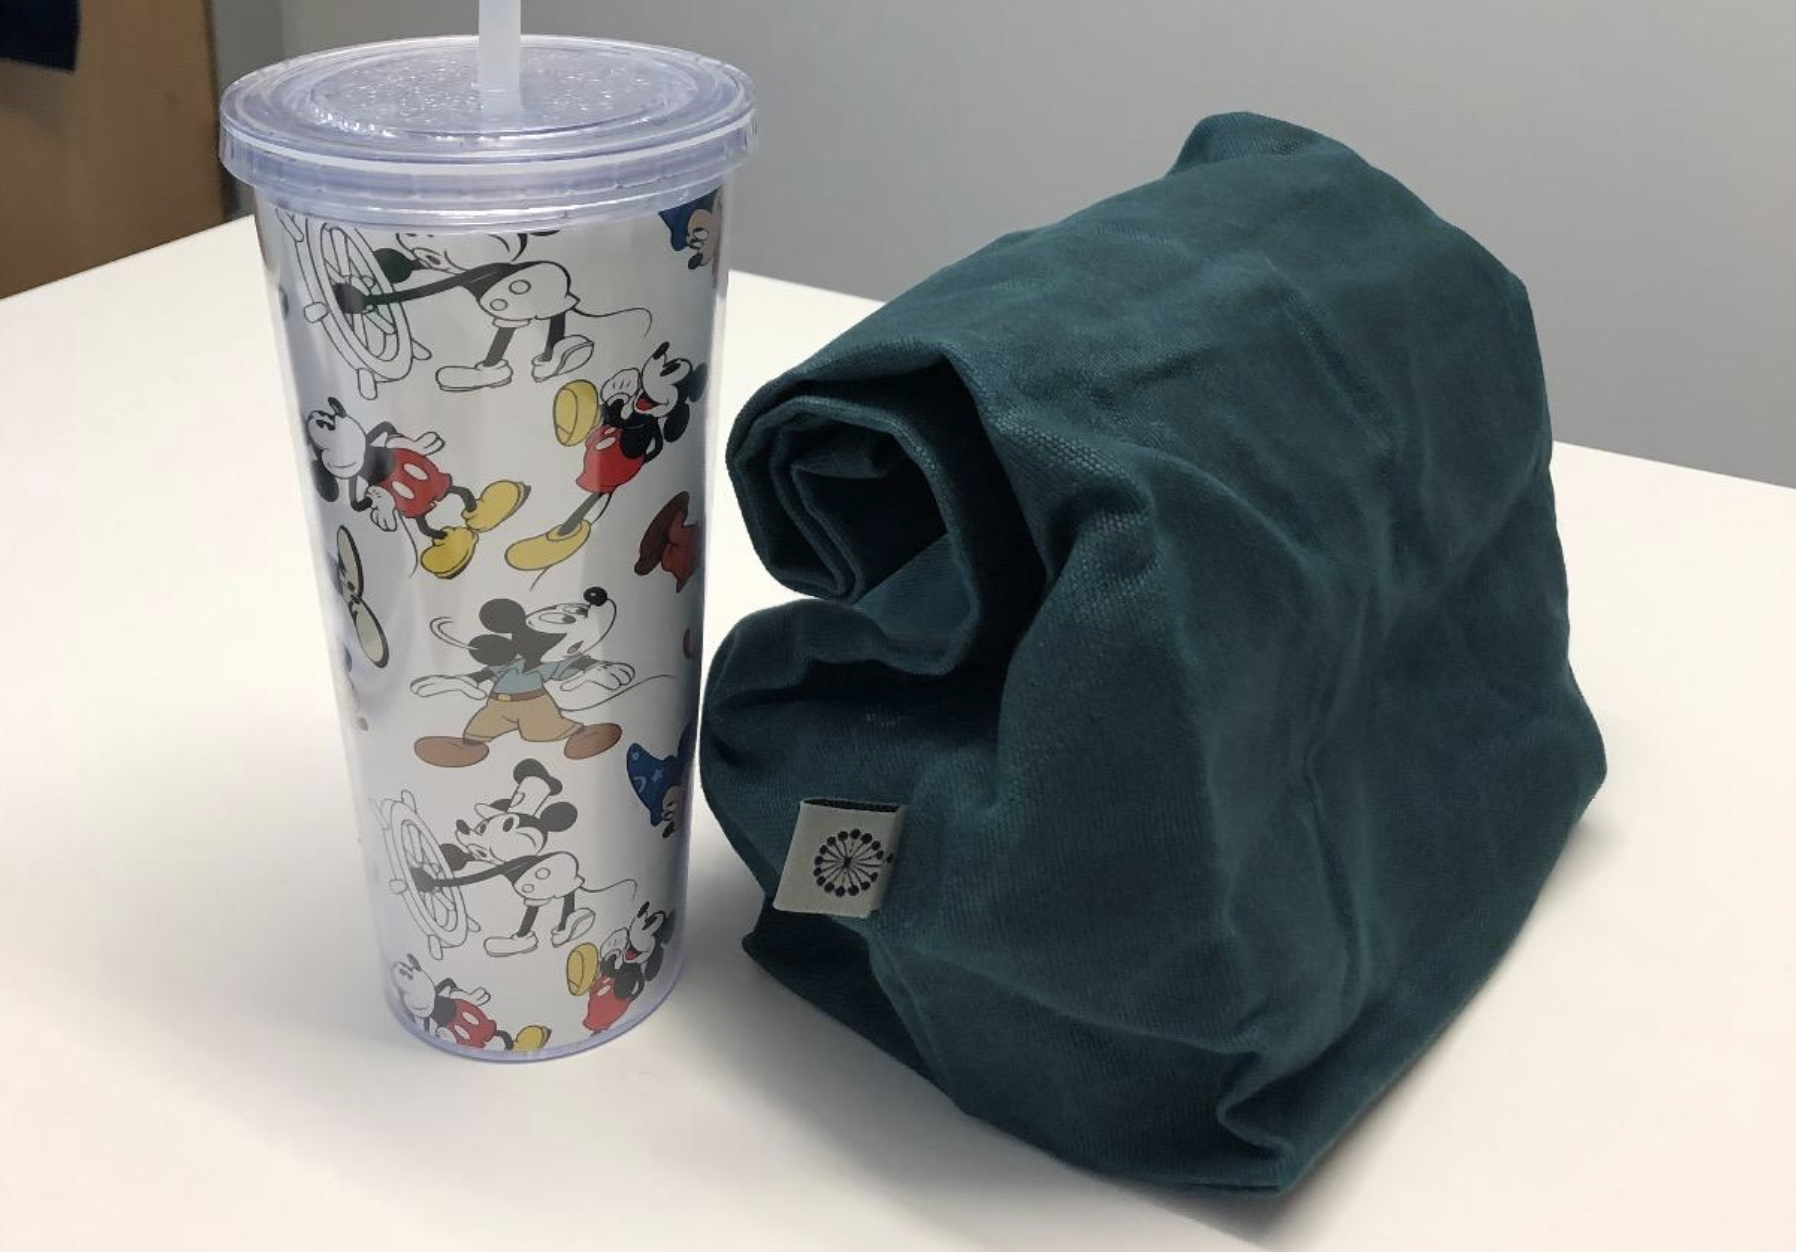 A dark green canvas bag shaped like a paper lunch box rolled up